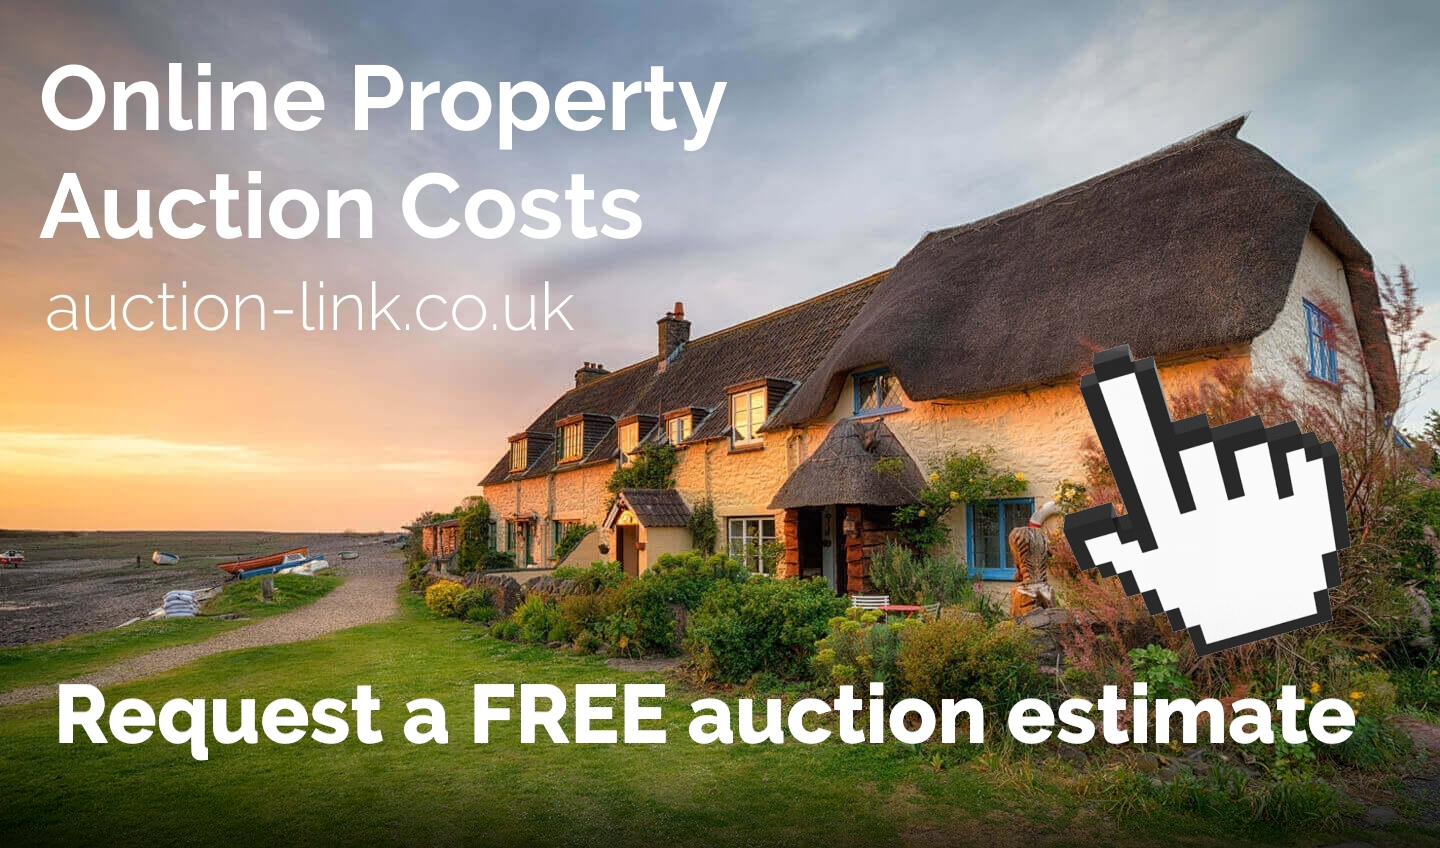 How Much Does It Cost To Sell A House Using Online Auction